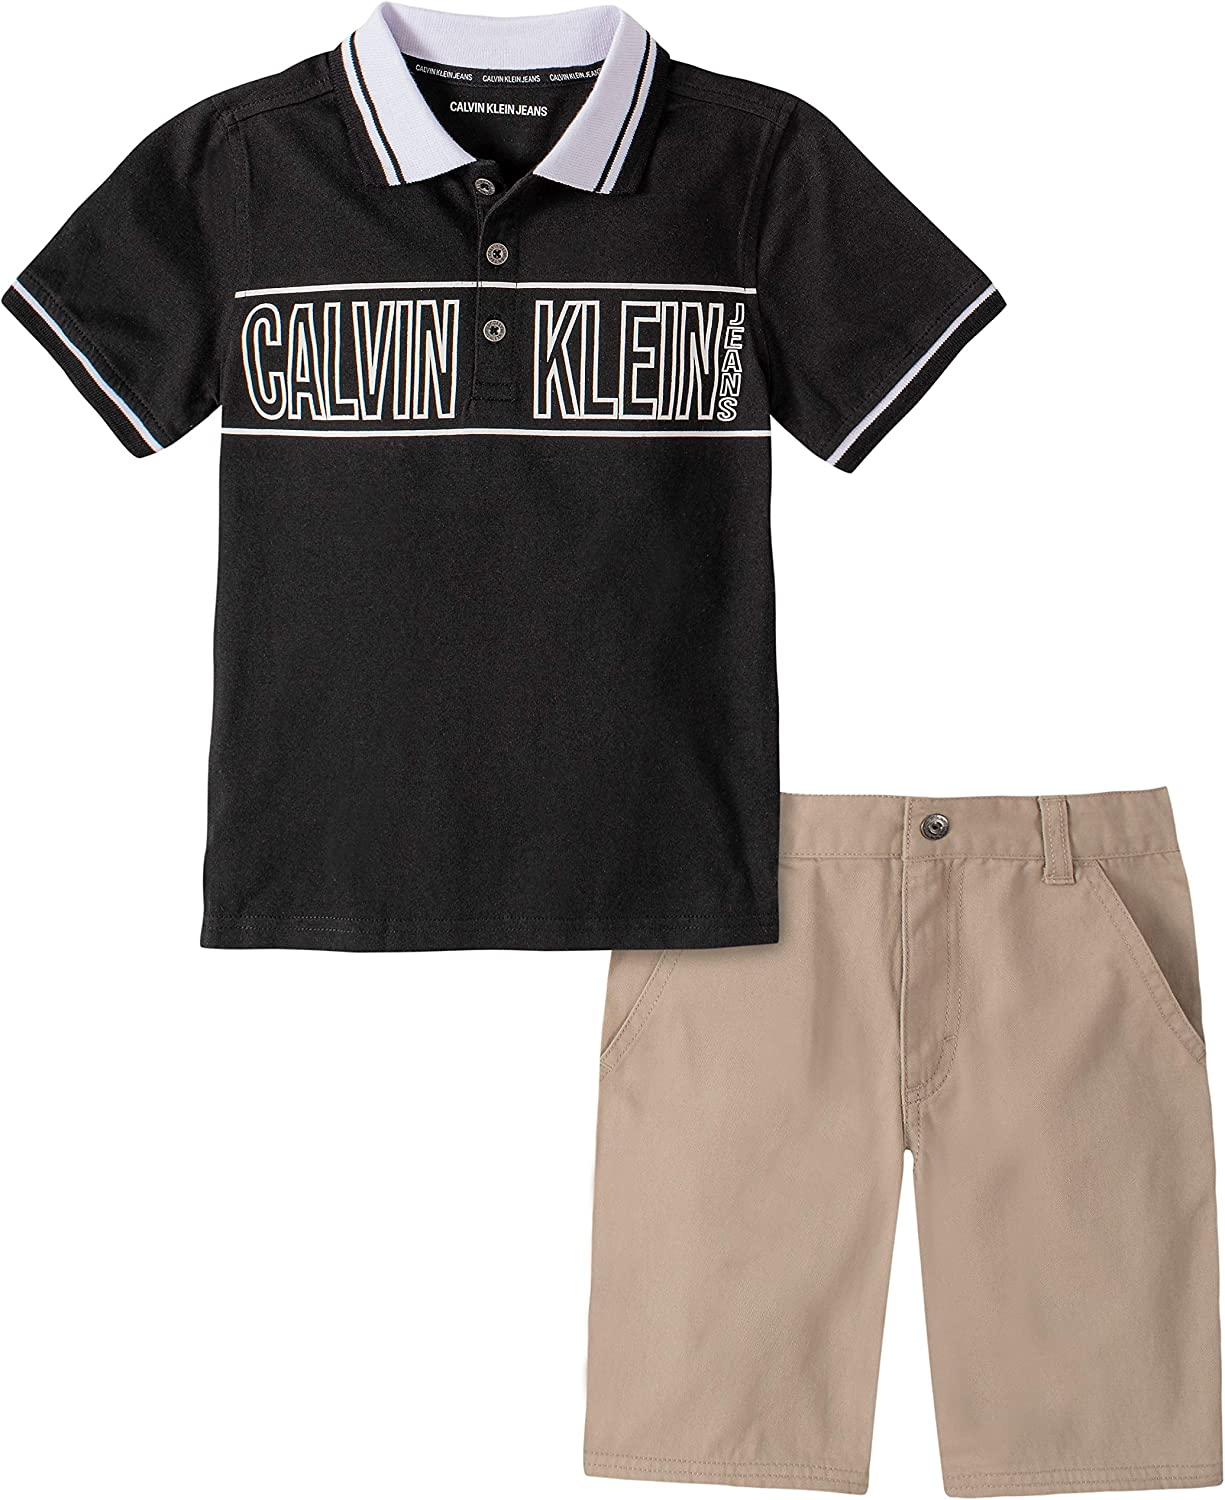 Calvin Klein Boys' 2 Pieces Polo Shorts Set